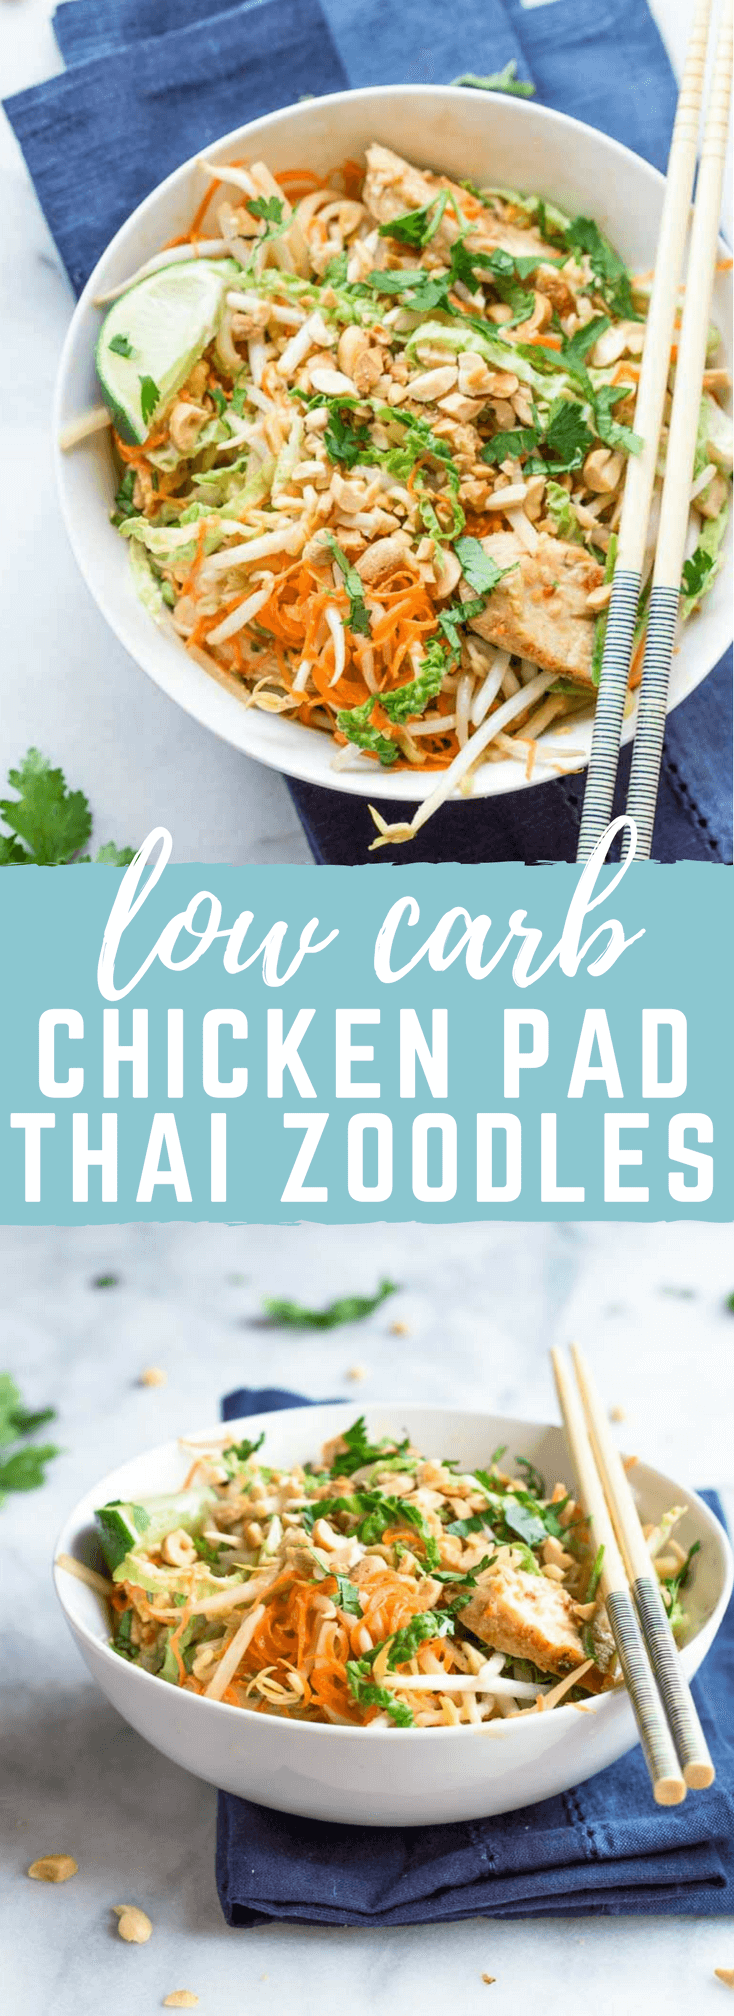 Carb Chicken Pad Thai Zoodles These Chicken Pad Thai Zoodles have so much flavor. This dinner is lower carb thanks to all the veggies like zucchini, carrots, bean sprouts, and cabbage. Grab the chopsticks and get this on your dinner table fast!These Chicken Pad Thai Zoodles have so much flavor. This dinner is lower carb thanks to all the veggies like zucchini, ...